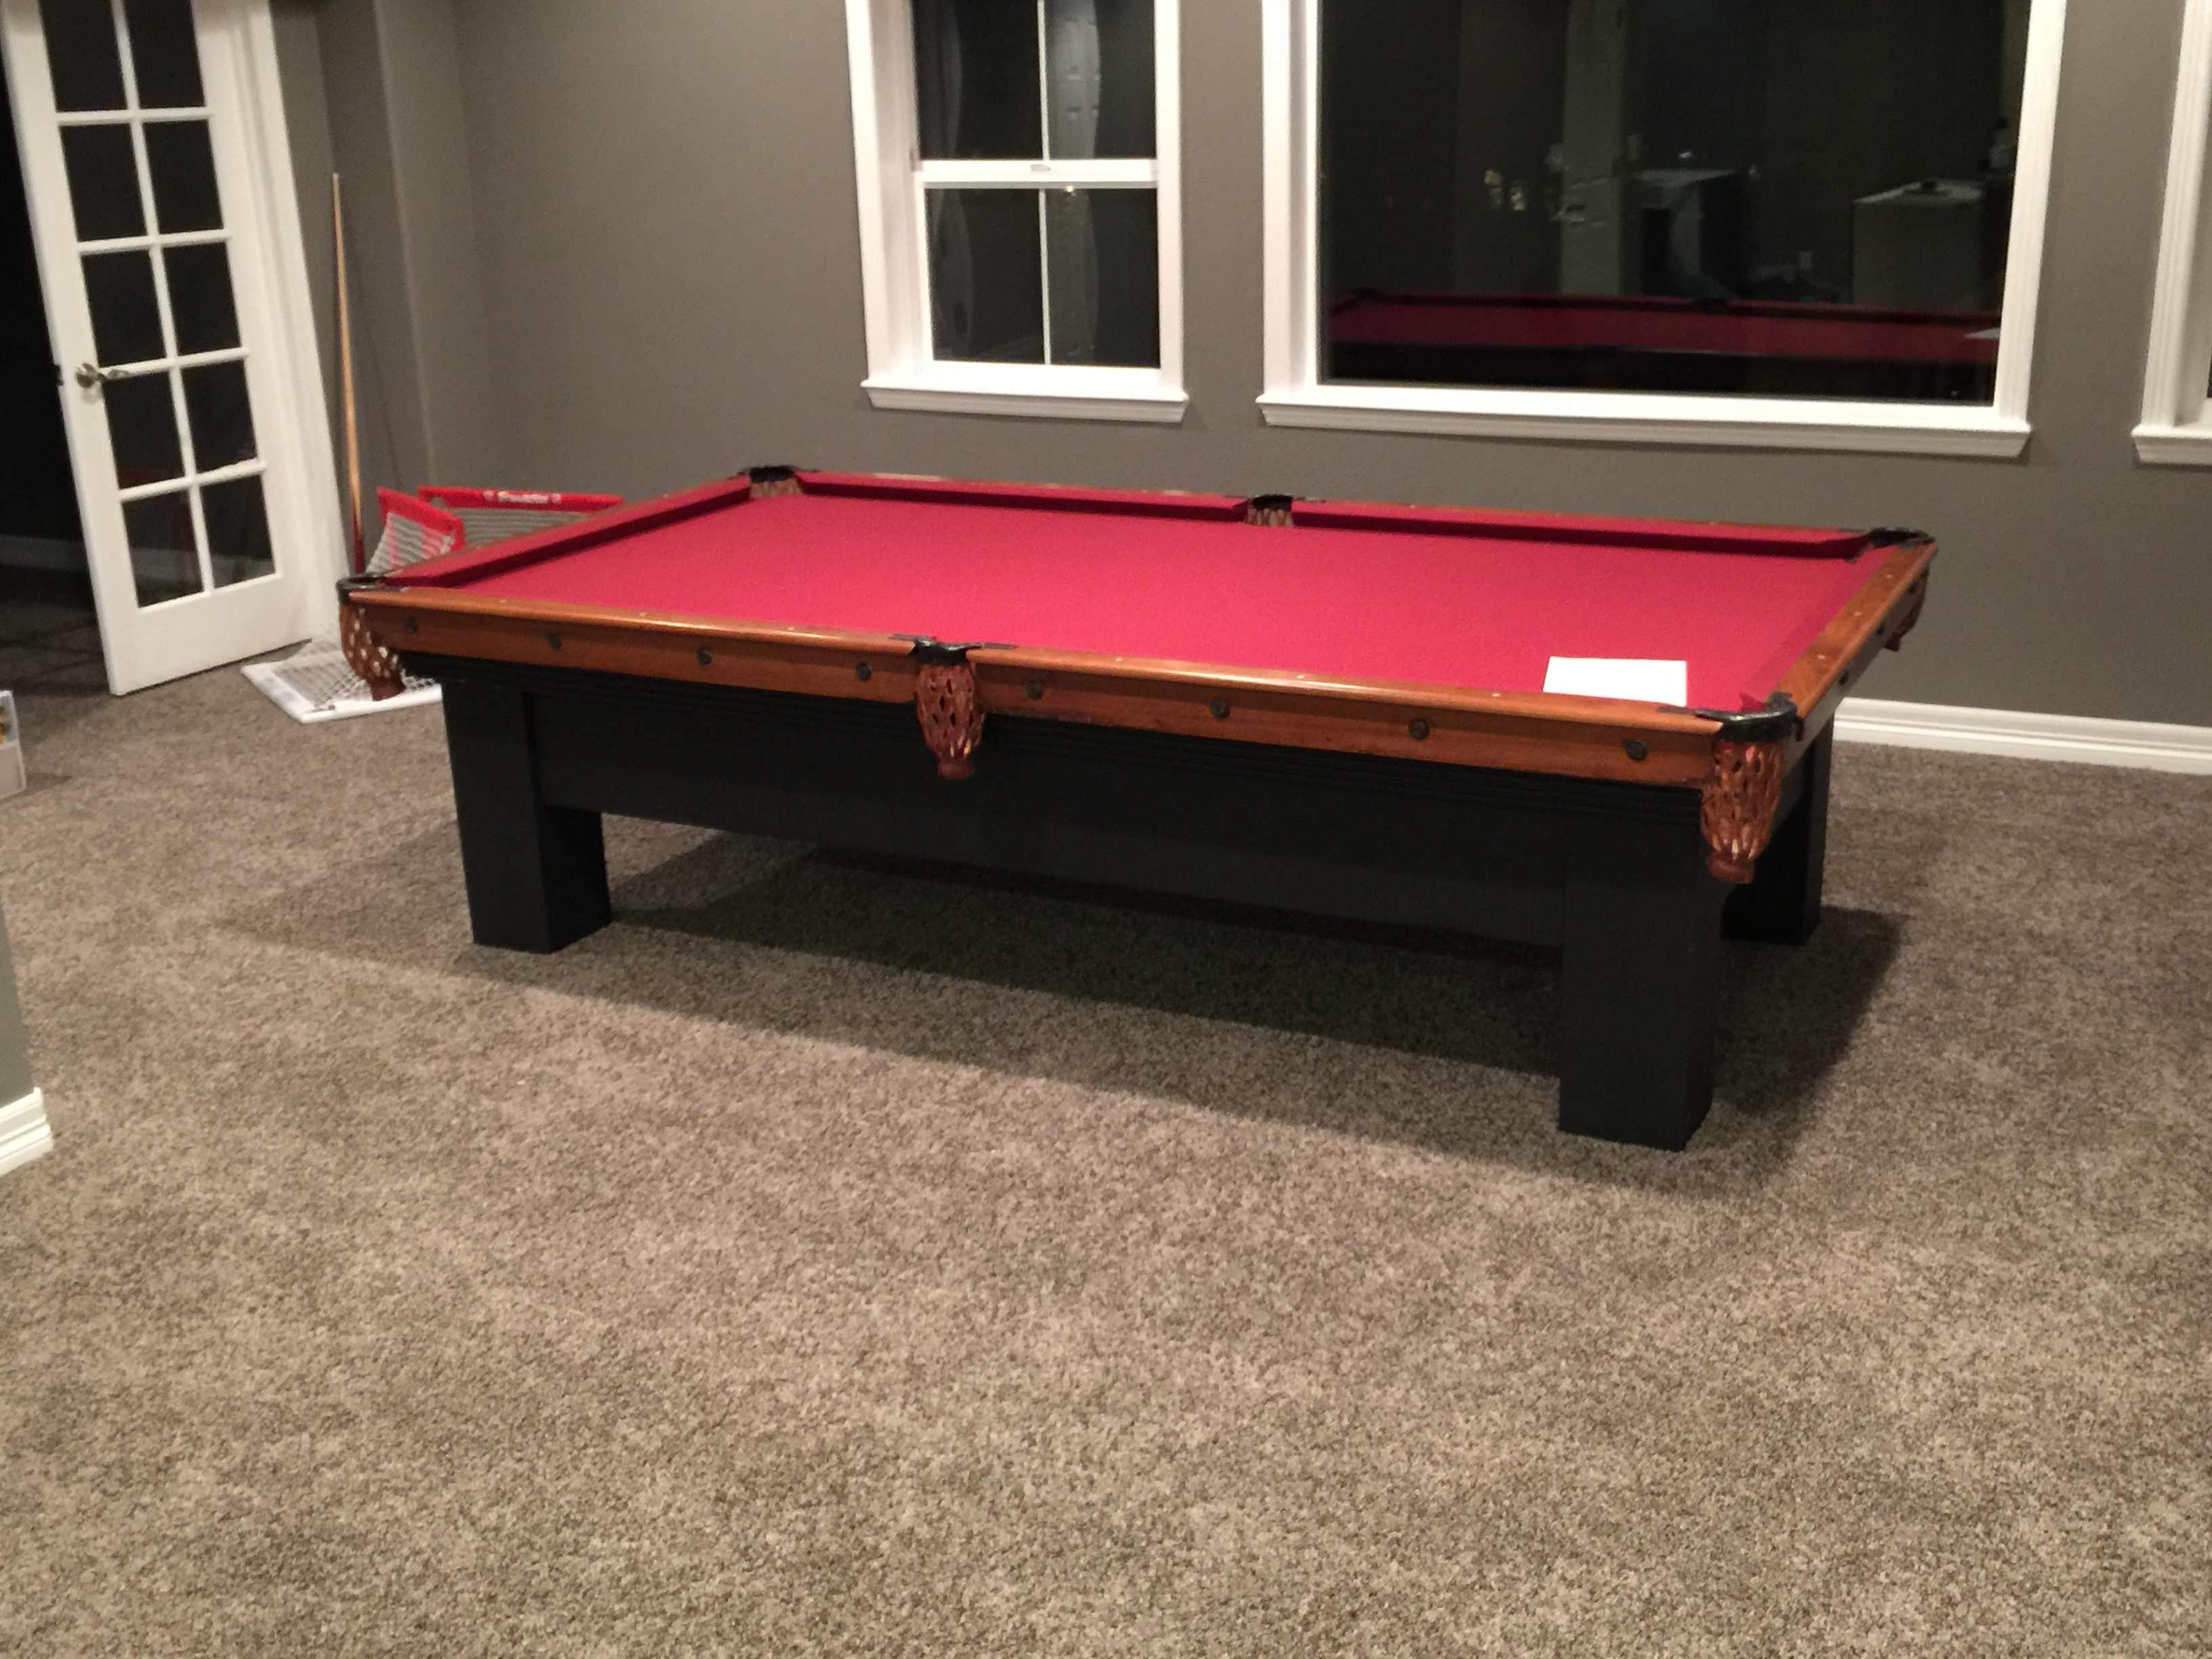 pooltablemover sell for your buy used sale by loca il new billiard tables crating refelt install table chicago best mover vary illinois location pool prices recushion